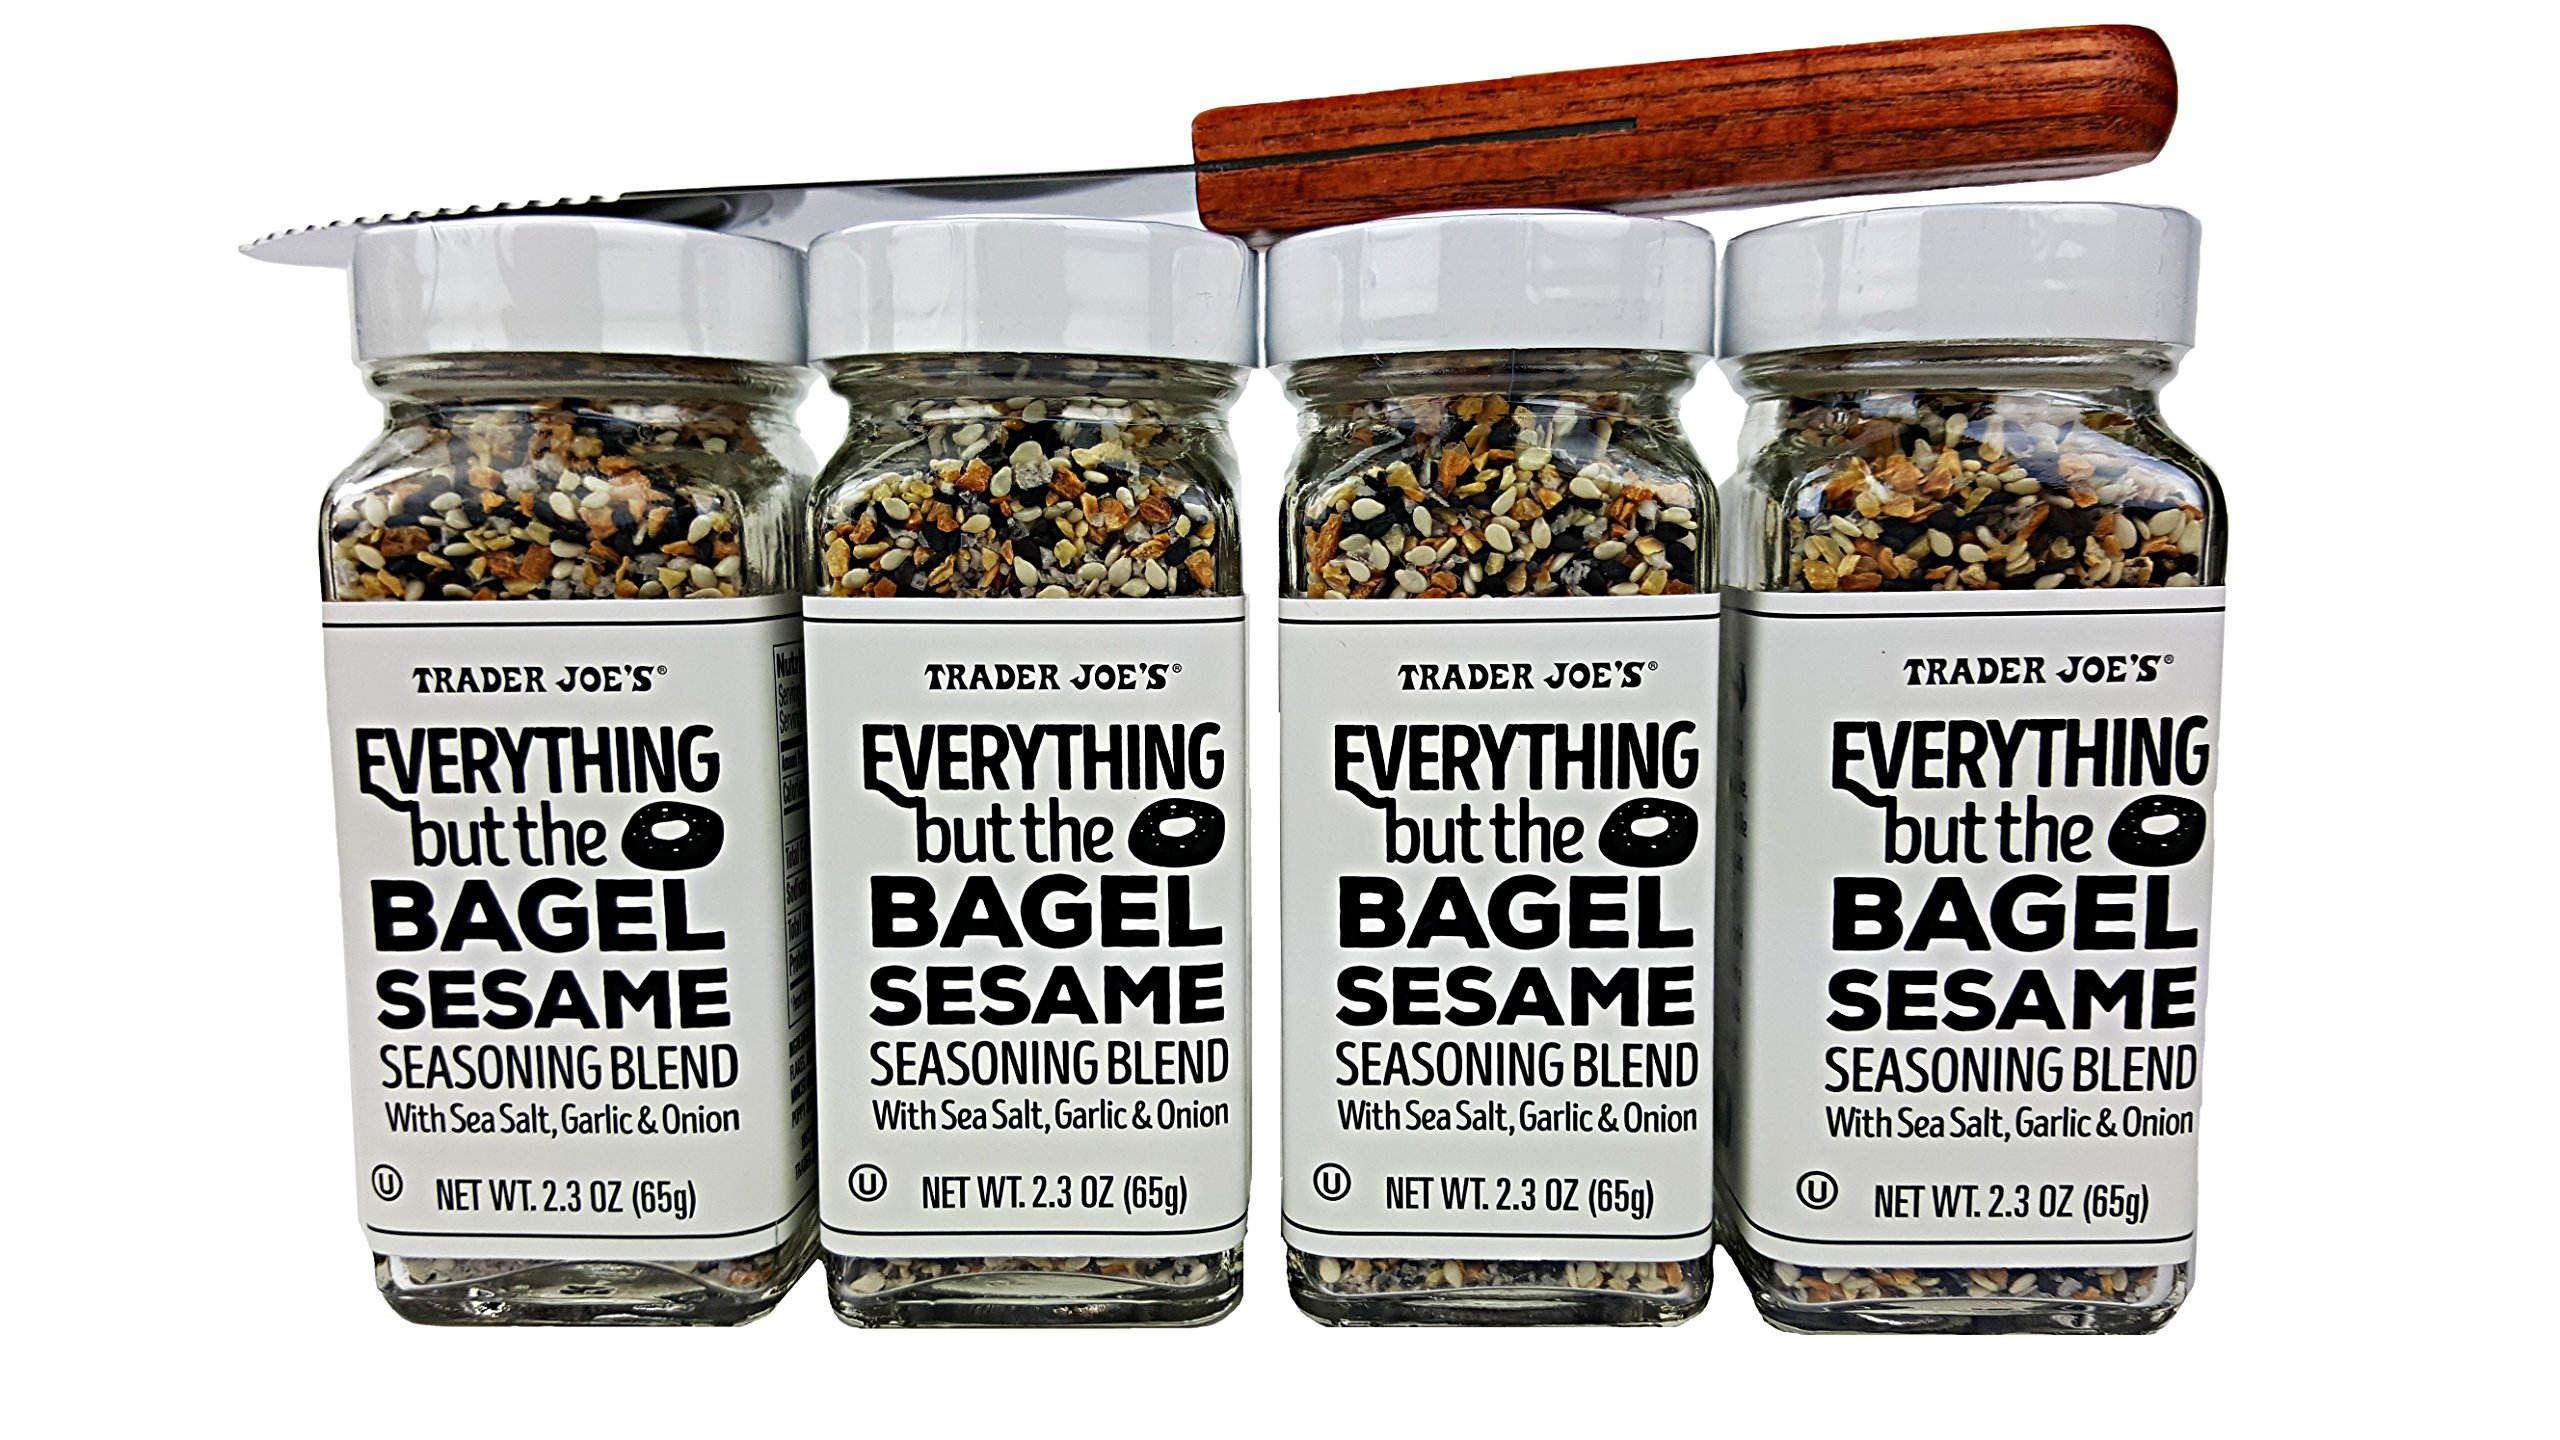 Trader Joes Everything but The Bagel Sesame Seasoning Blend With Sea Salt, Garlic and Onion Bundle - (Pack of 4) and Butter/Cream Cheese Spreading Knife by Unknown (Image #3)